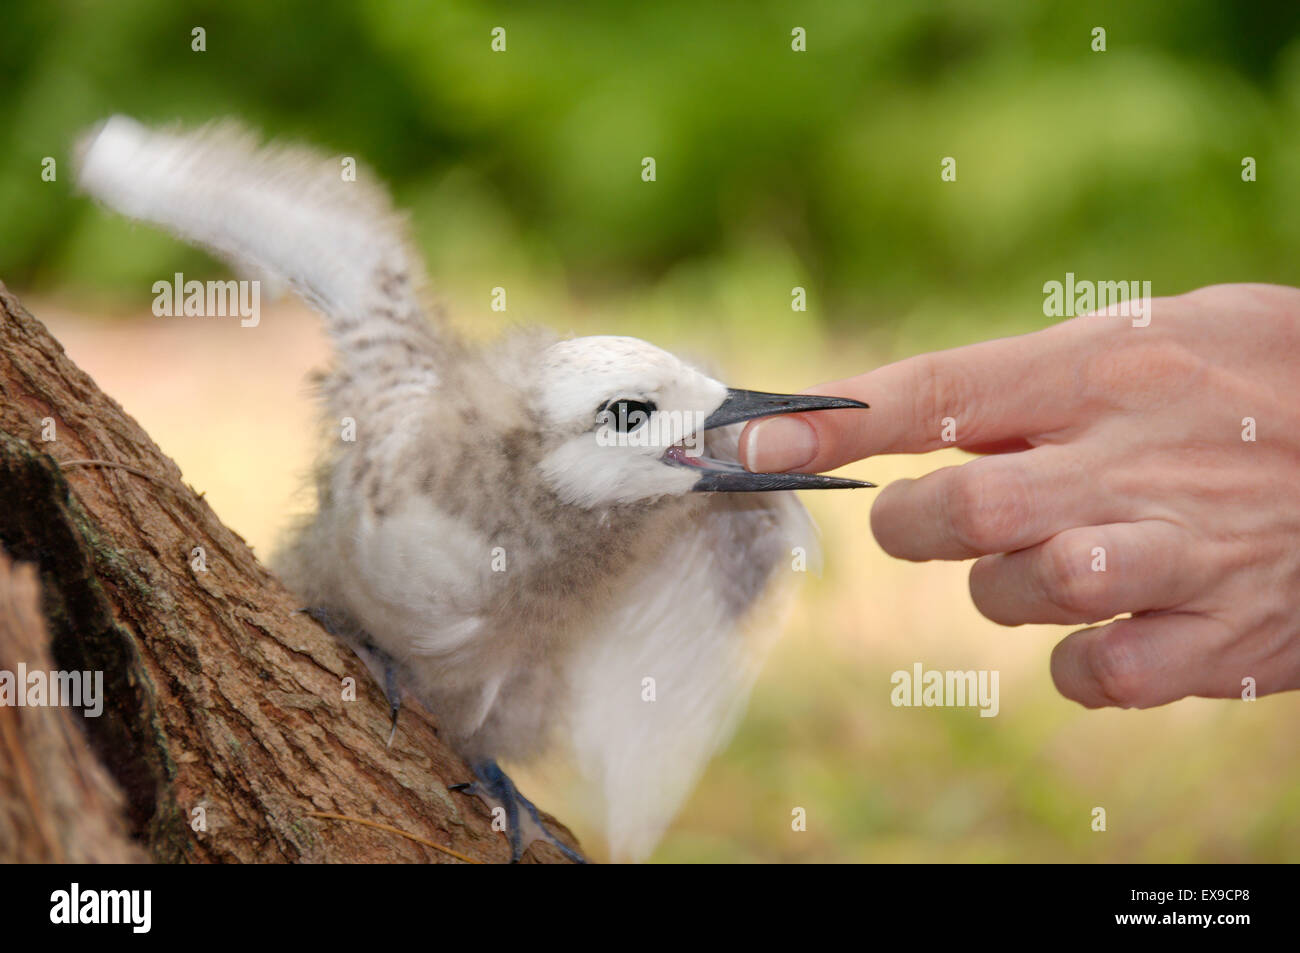 how to stop a baby bird from biting